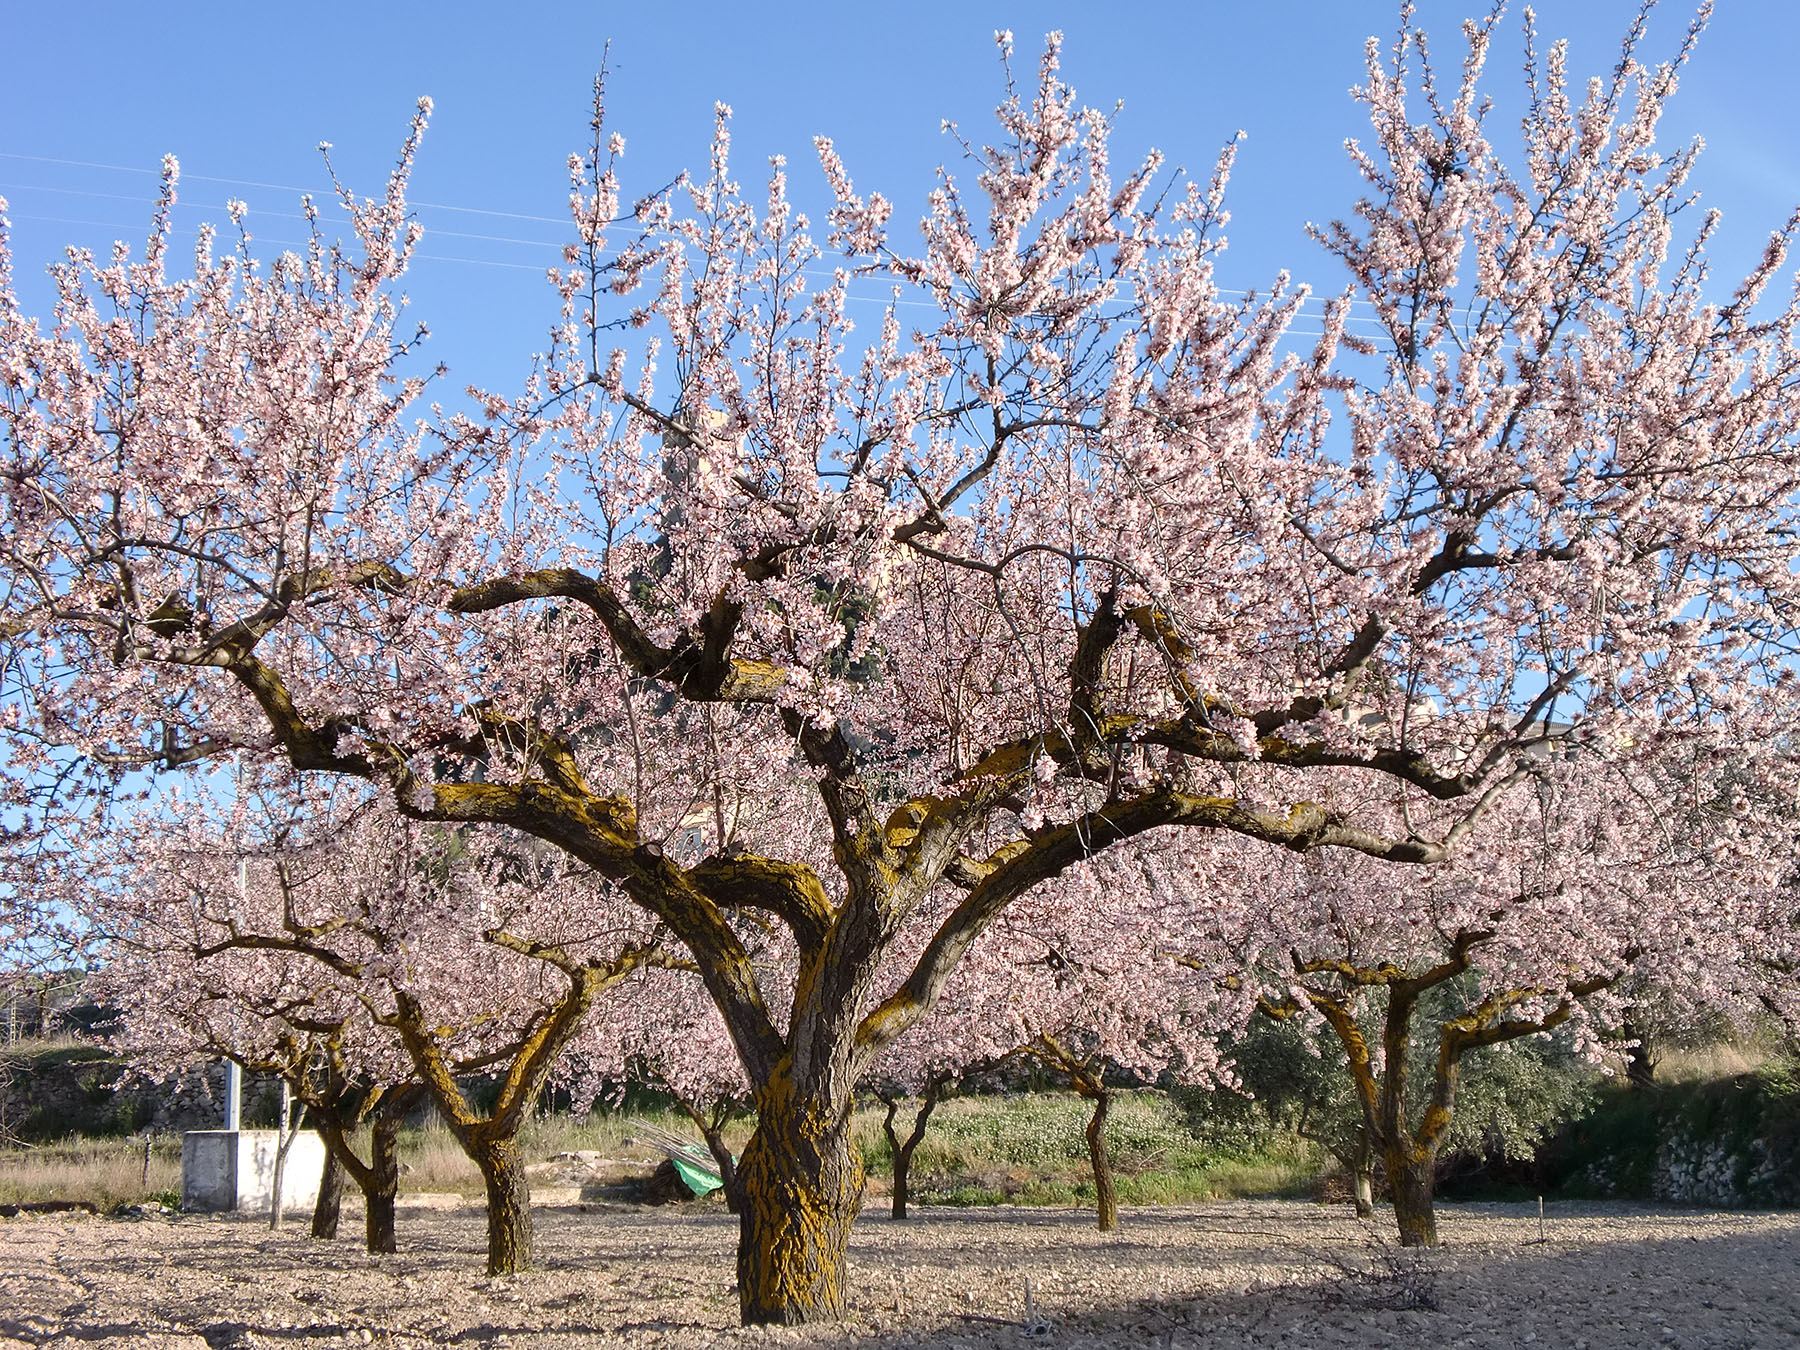 Almond trees in blossom 2